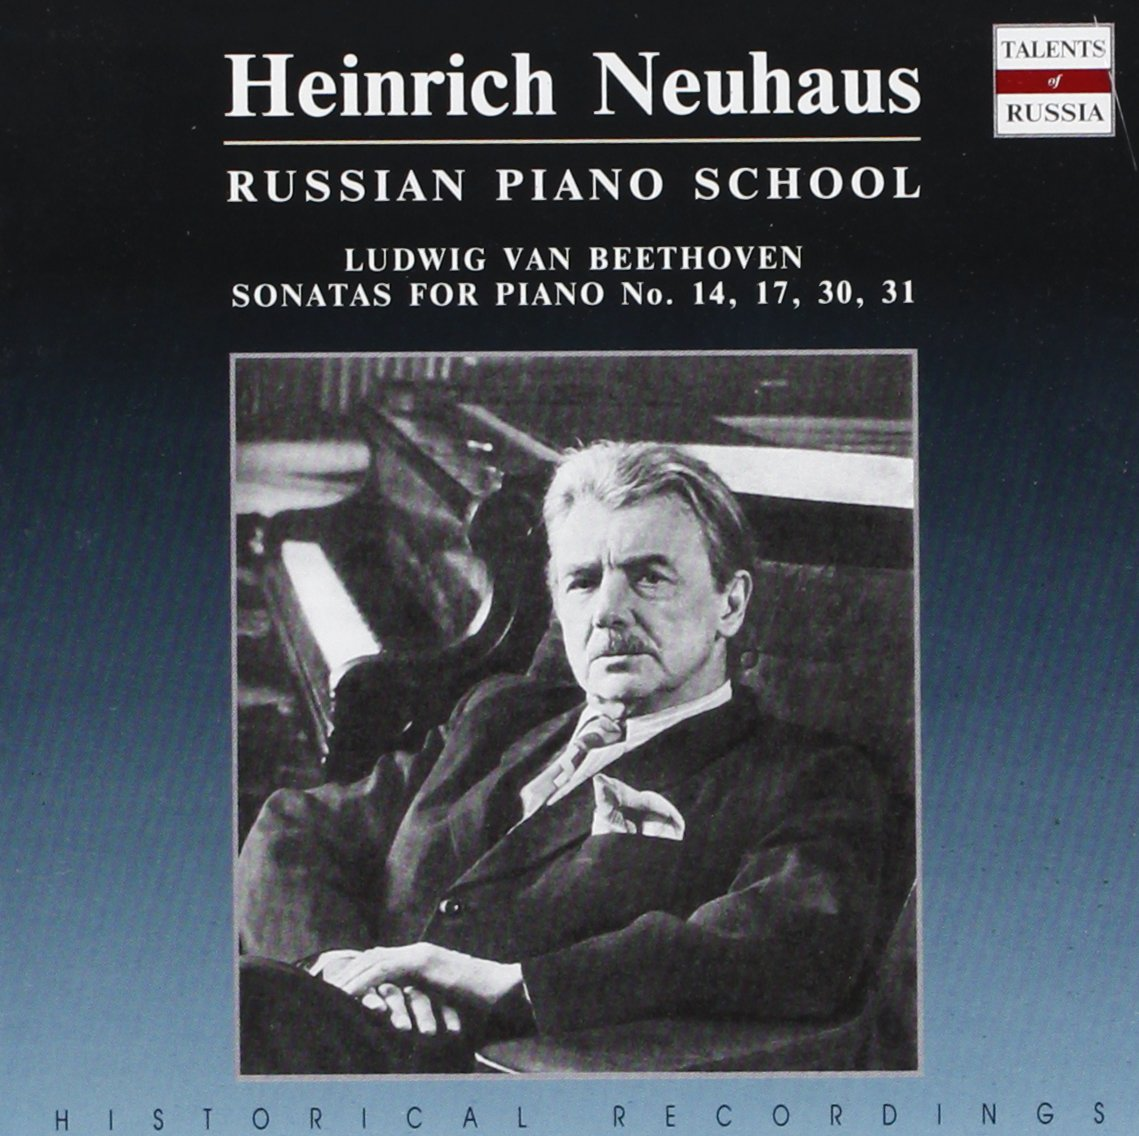 Heinrich Neuhaus: Russian Piano School - Beethoven: Sonatas for Piano No. 14, 17, 30, 31 by RUSSIAN COMPACT DISC